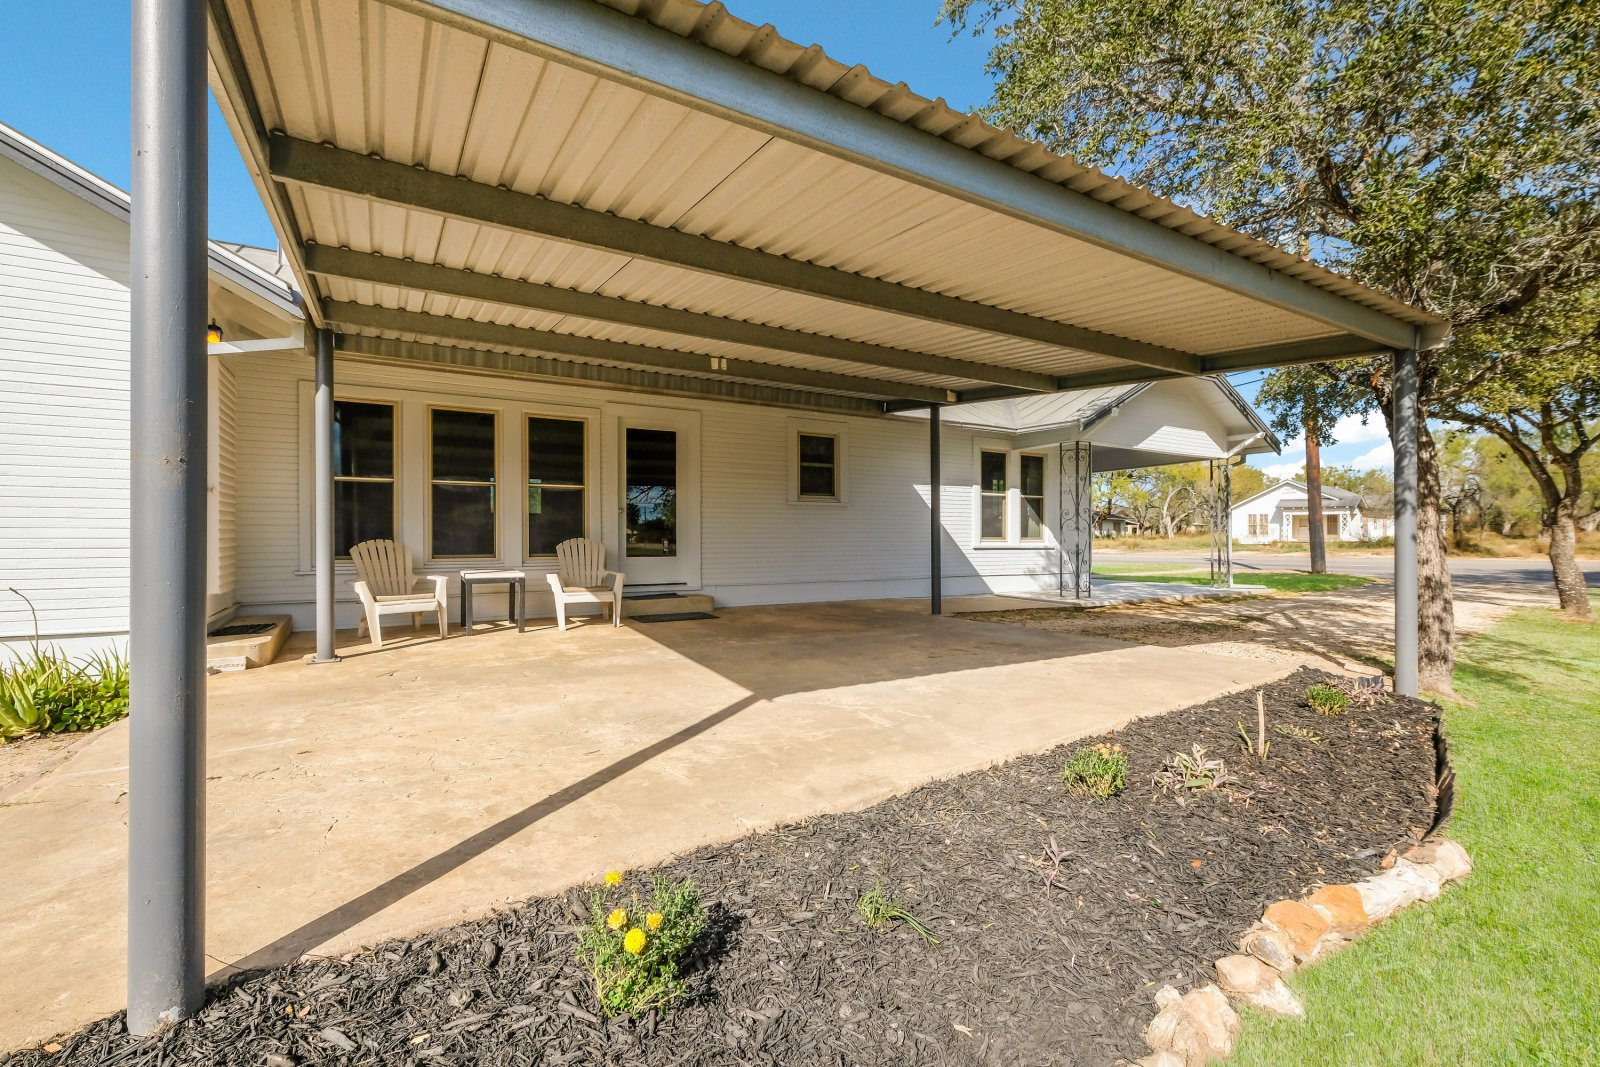 Home for Sale - Poth Tx - 310 S Storts carport